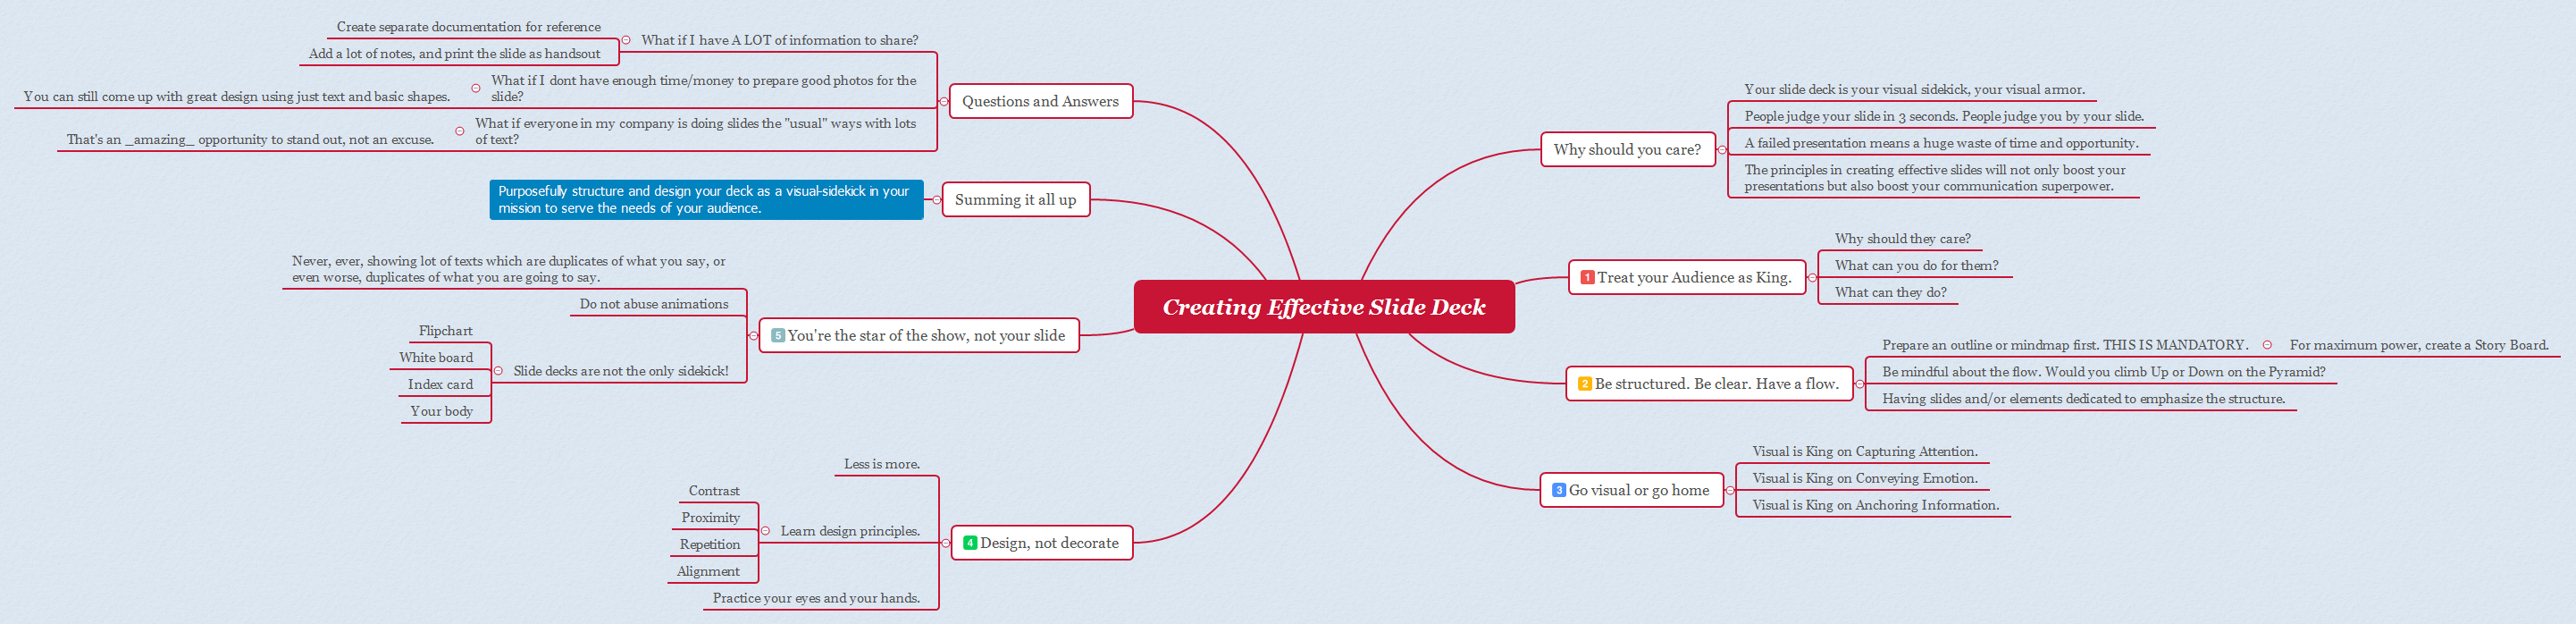 Creating Effective Slide Deck